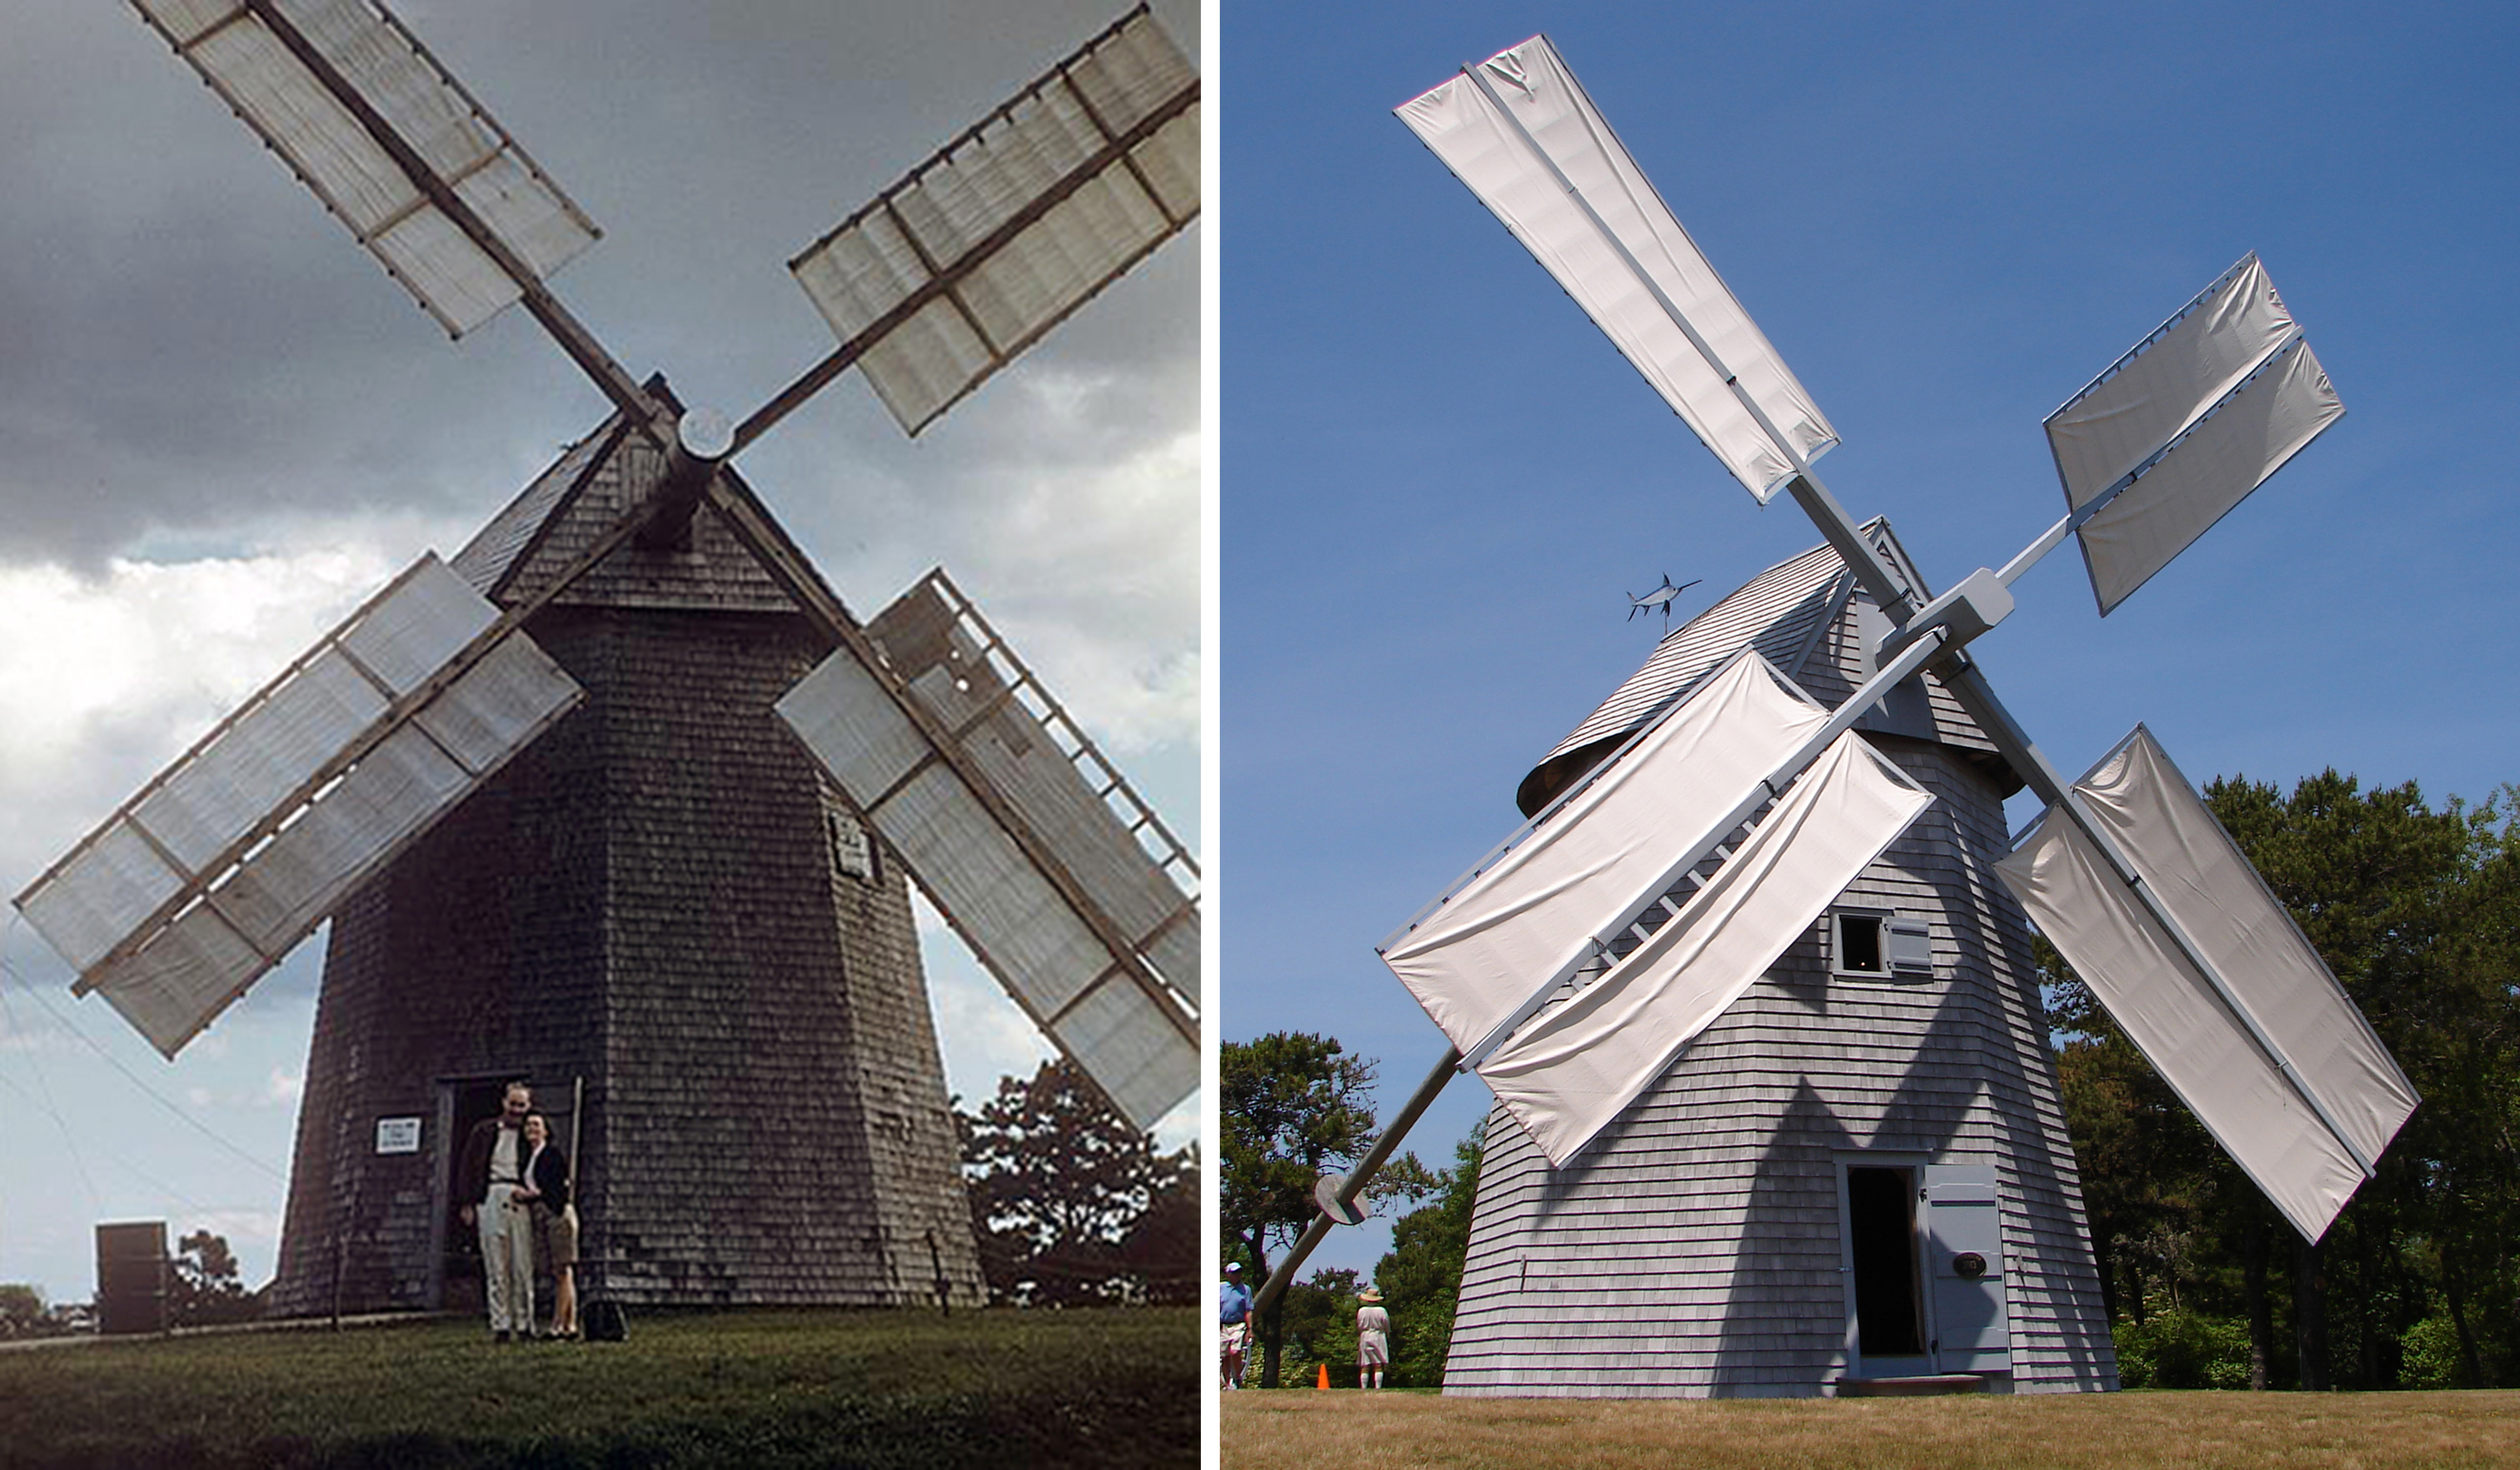 Then and Now:  These photos of the Godfrey Windmill, taken 60 years apart, show (left) the mill in 1956, the year it was opened to the public following its relocation to Chase Park and (right) a 2016 photo of the mill.